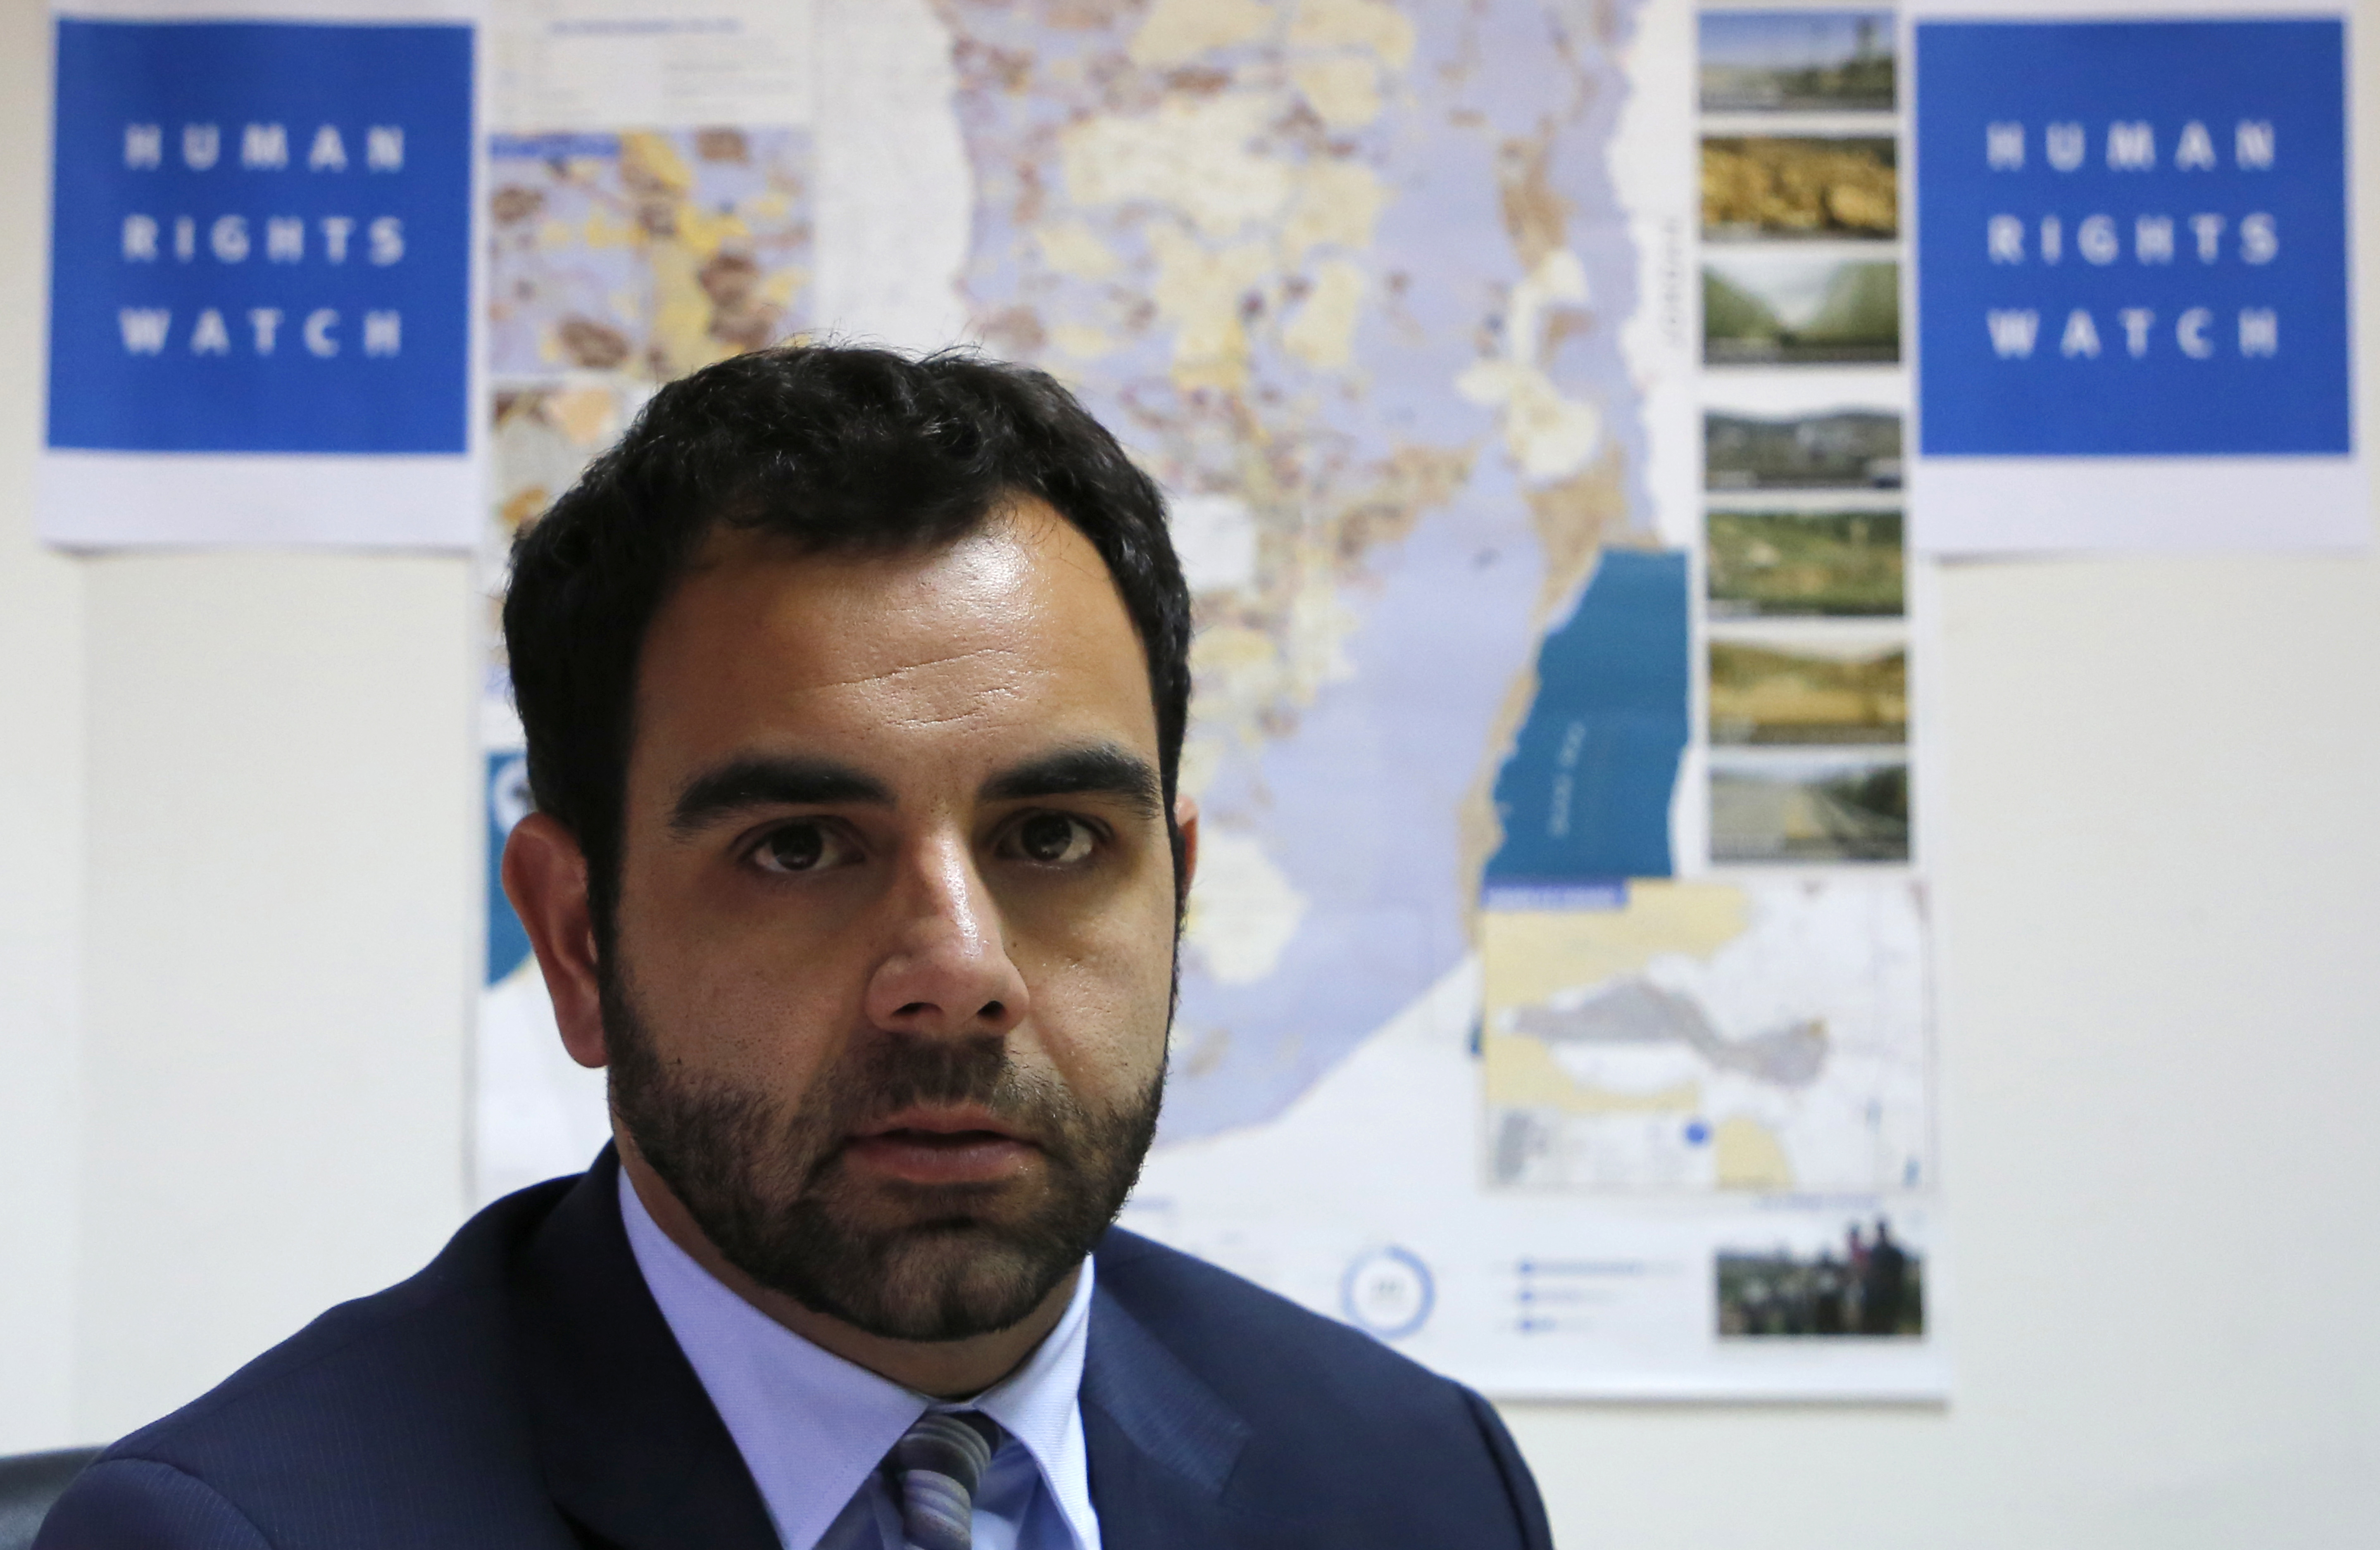 Human Rights Watch's Israel and Palestine director Omar Shakir, a US citizen, sits at his office in the West Bank city of Ramallah on May 9, 2018.